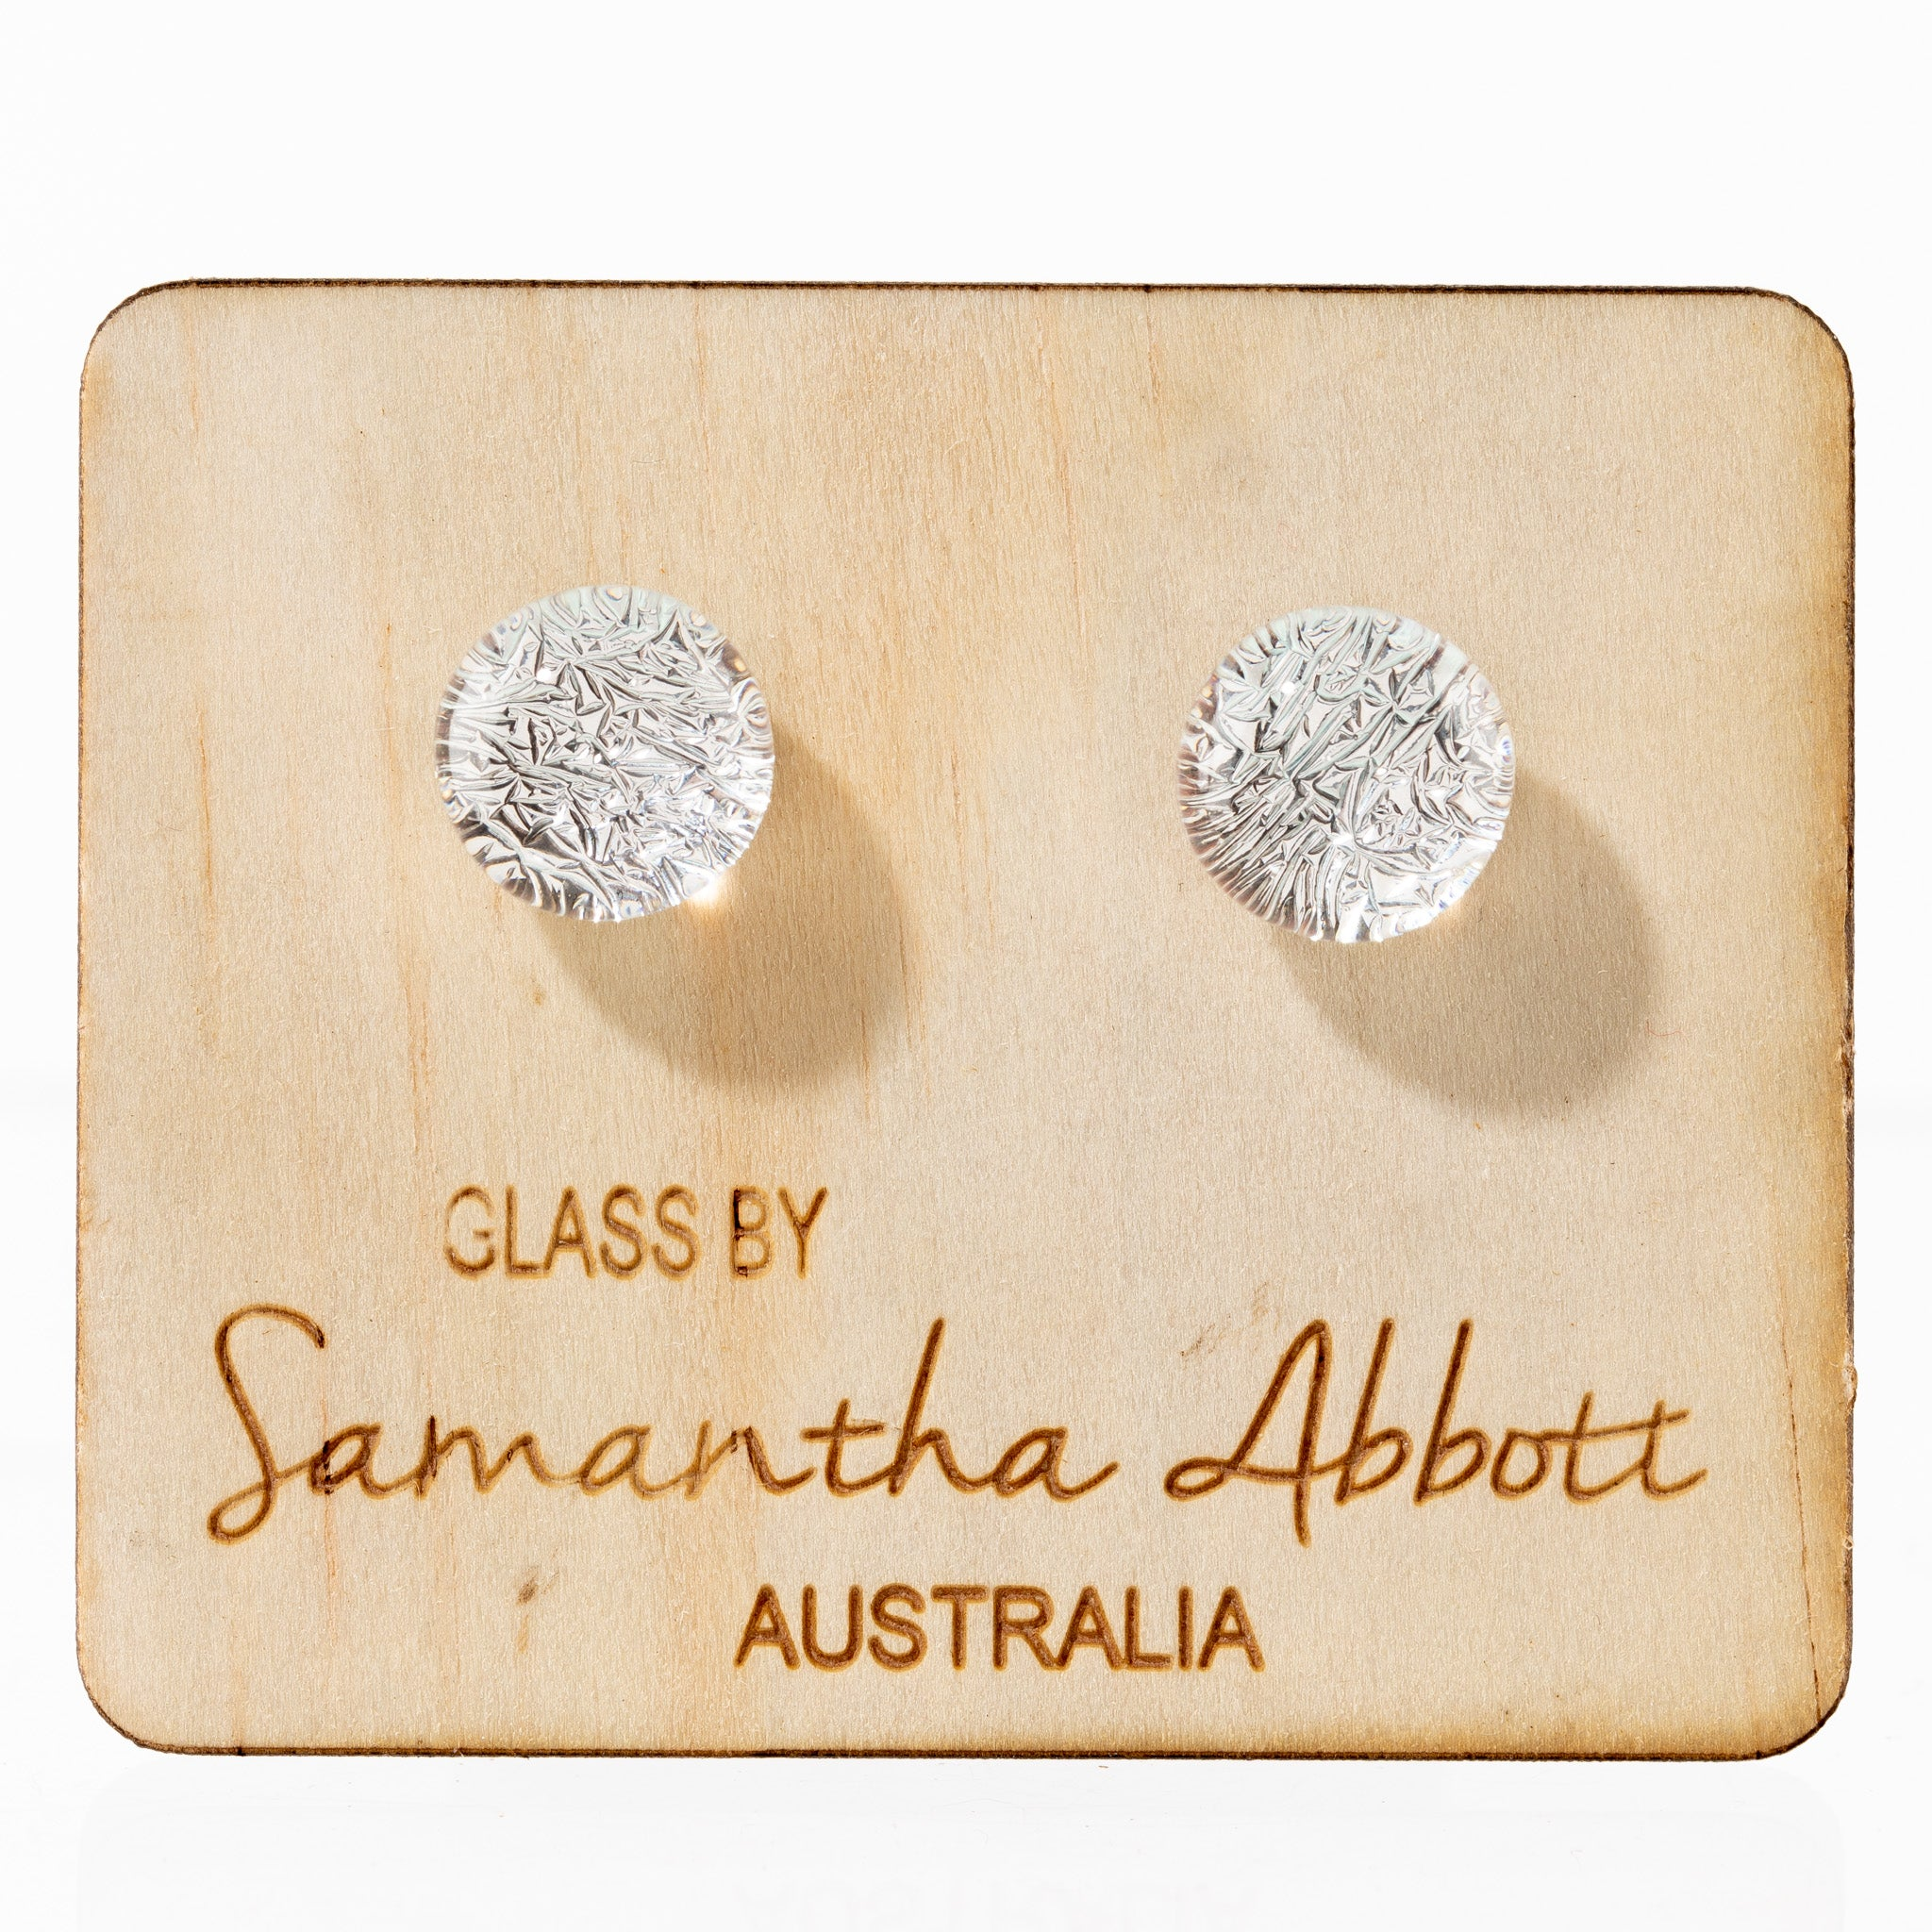 Glass Stud Earrings - Ice Sparkle